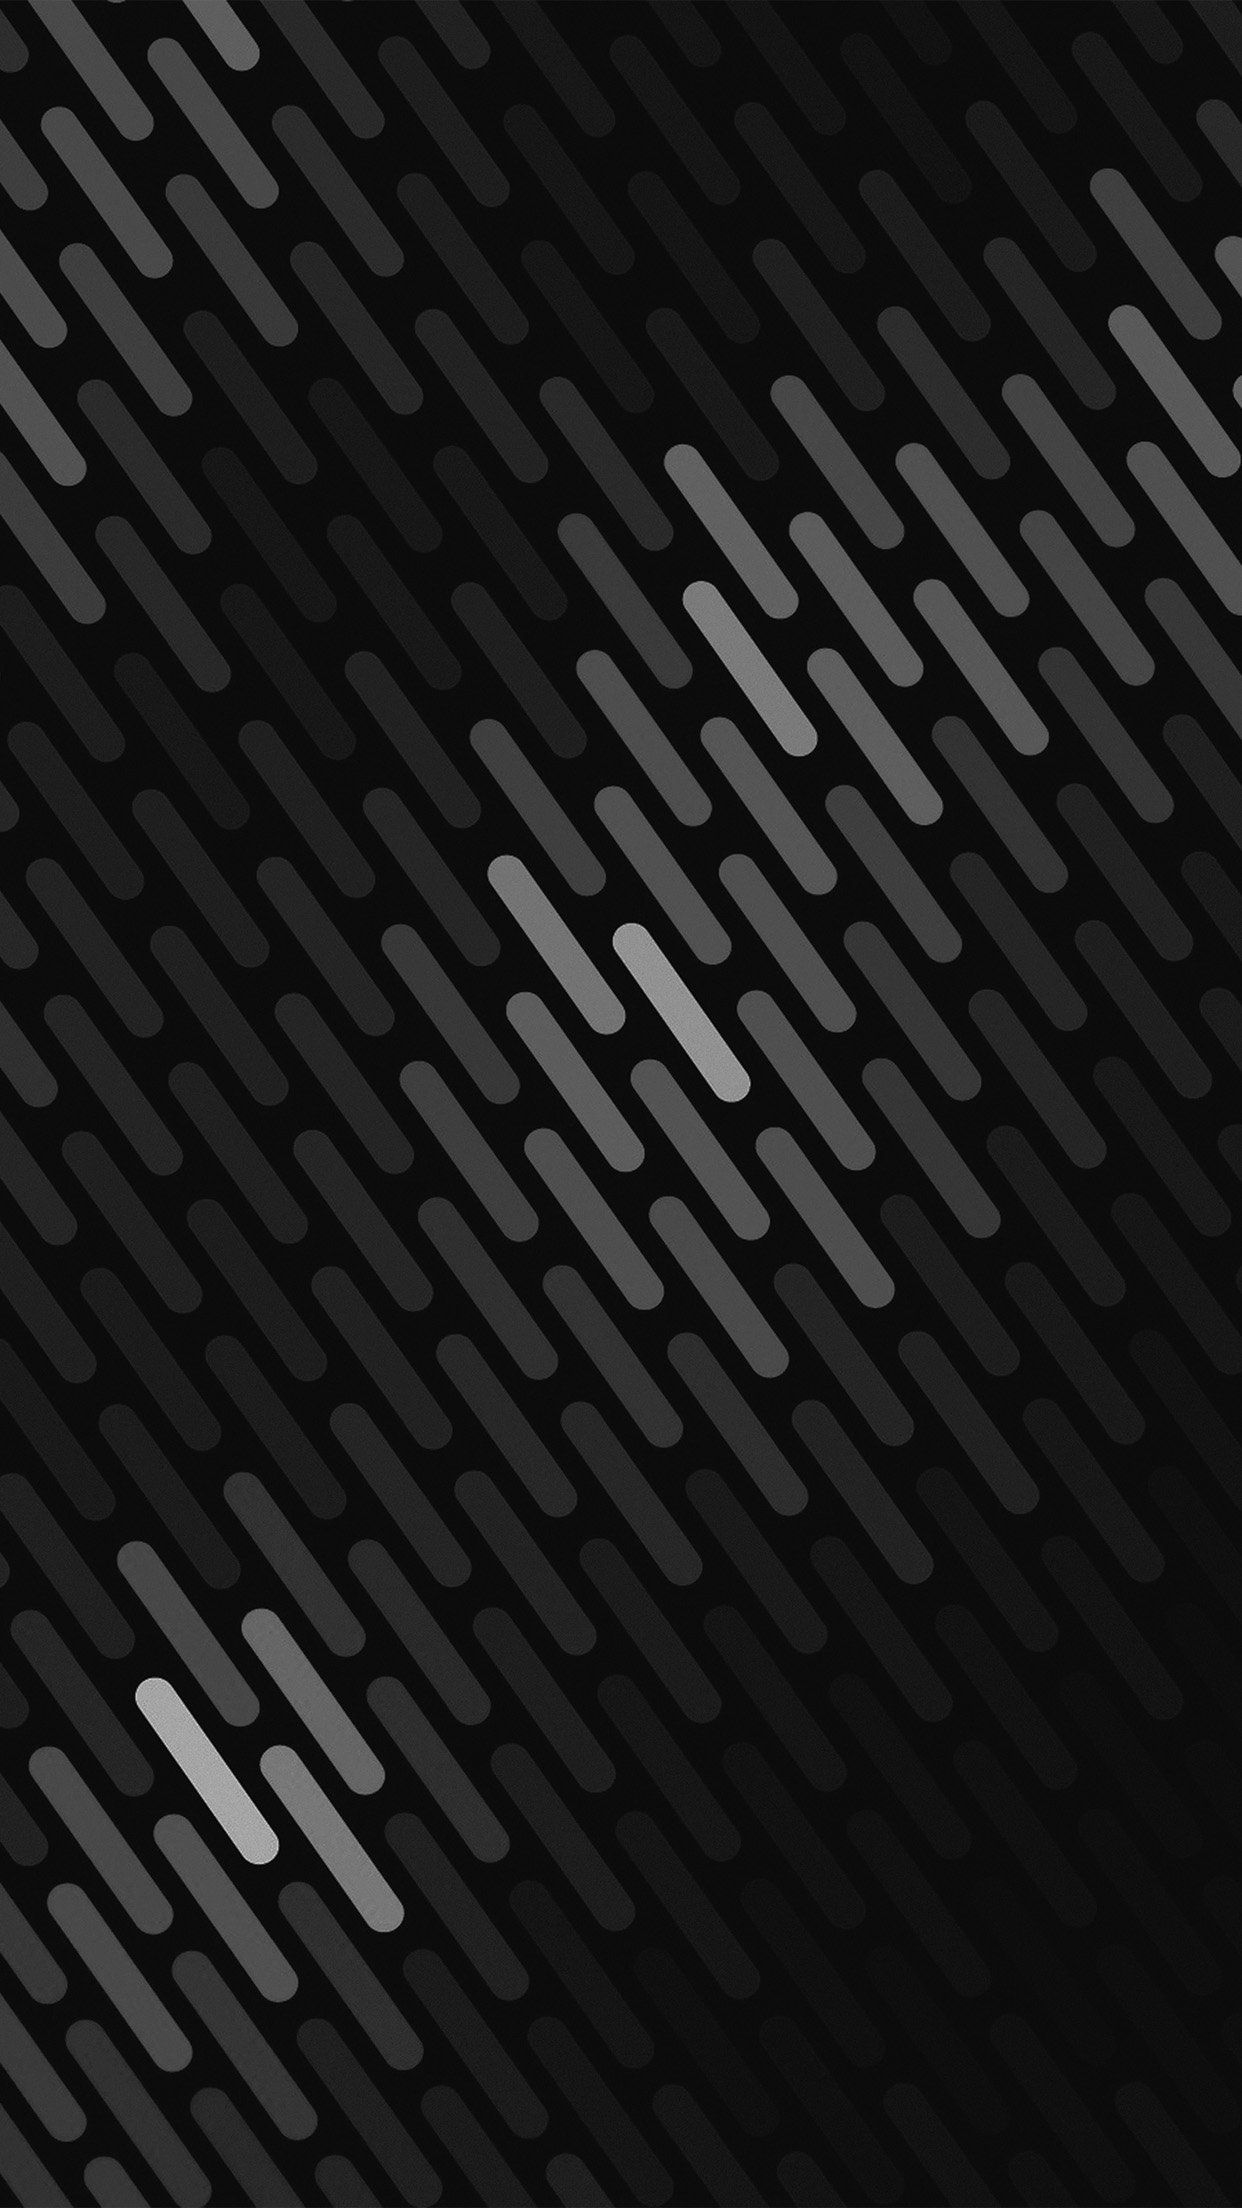 Cool Black Abstract Wallpapers - Top Free Cool Black Abstract Backgrounds -  WallpaperAccess